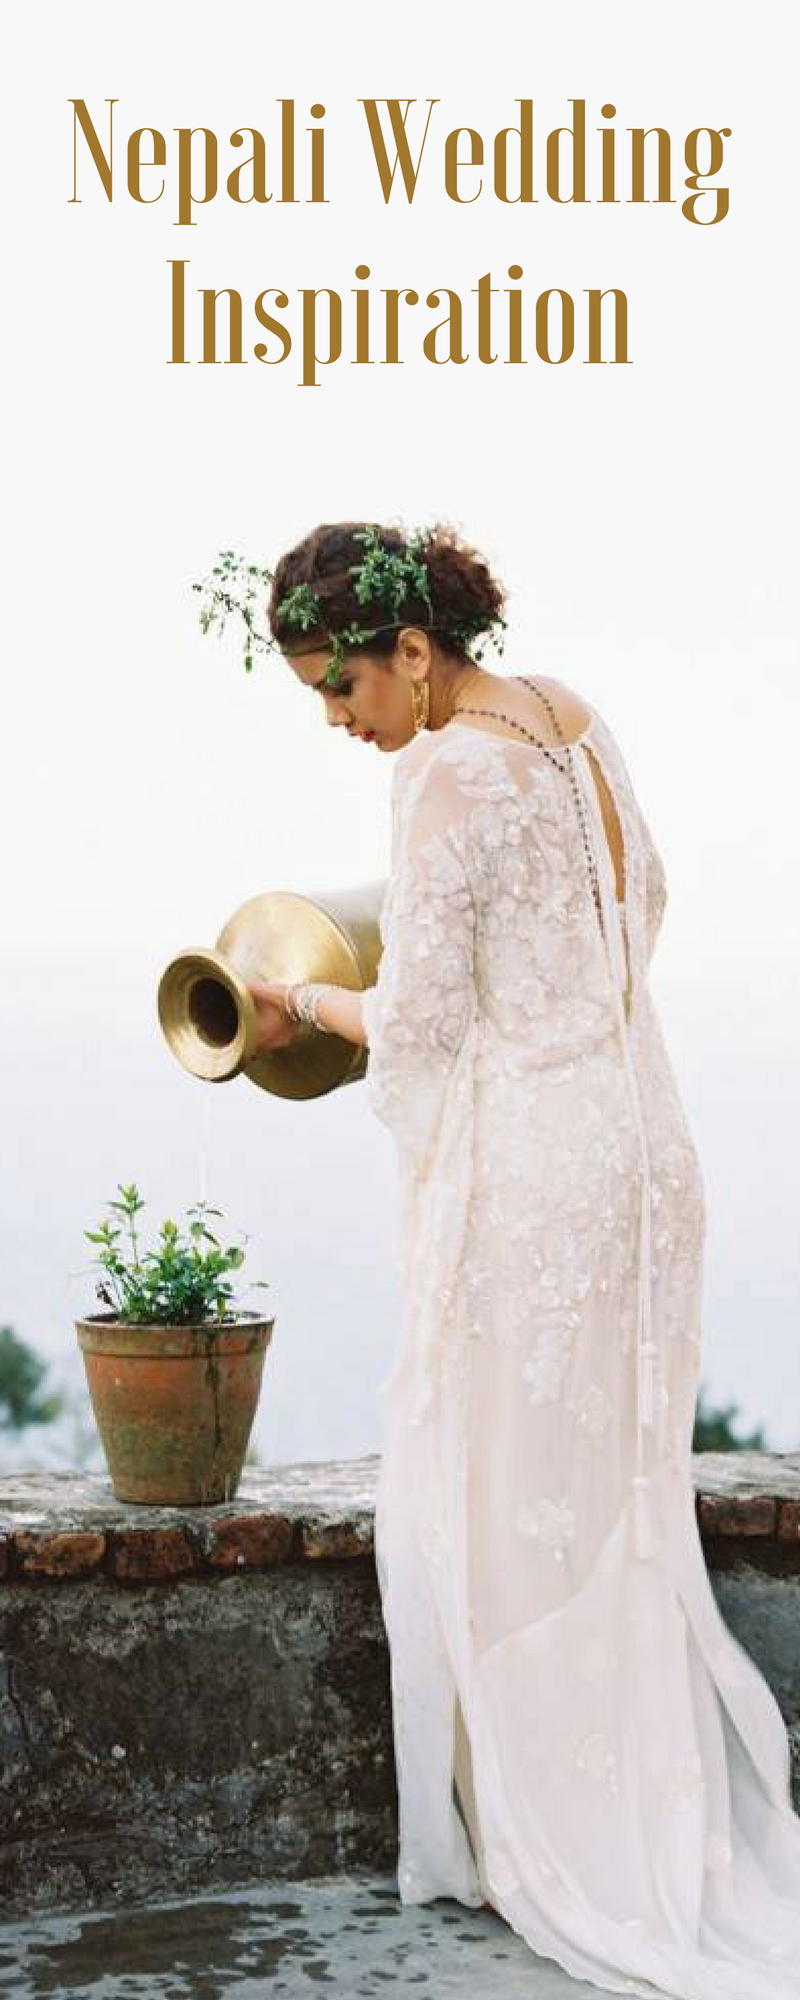 In the Midst of Devastation - Hope. A Nepali Wedding Inspiration ...